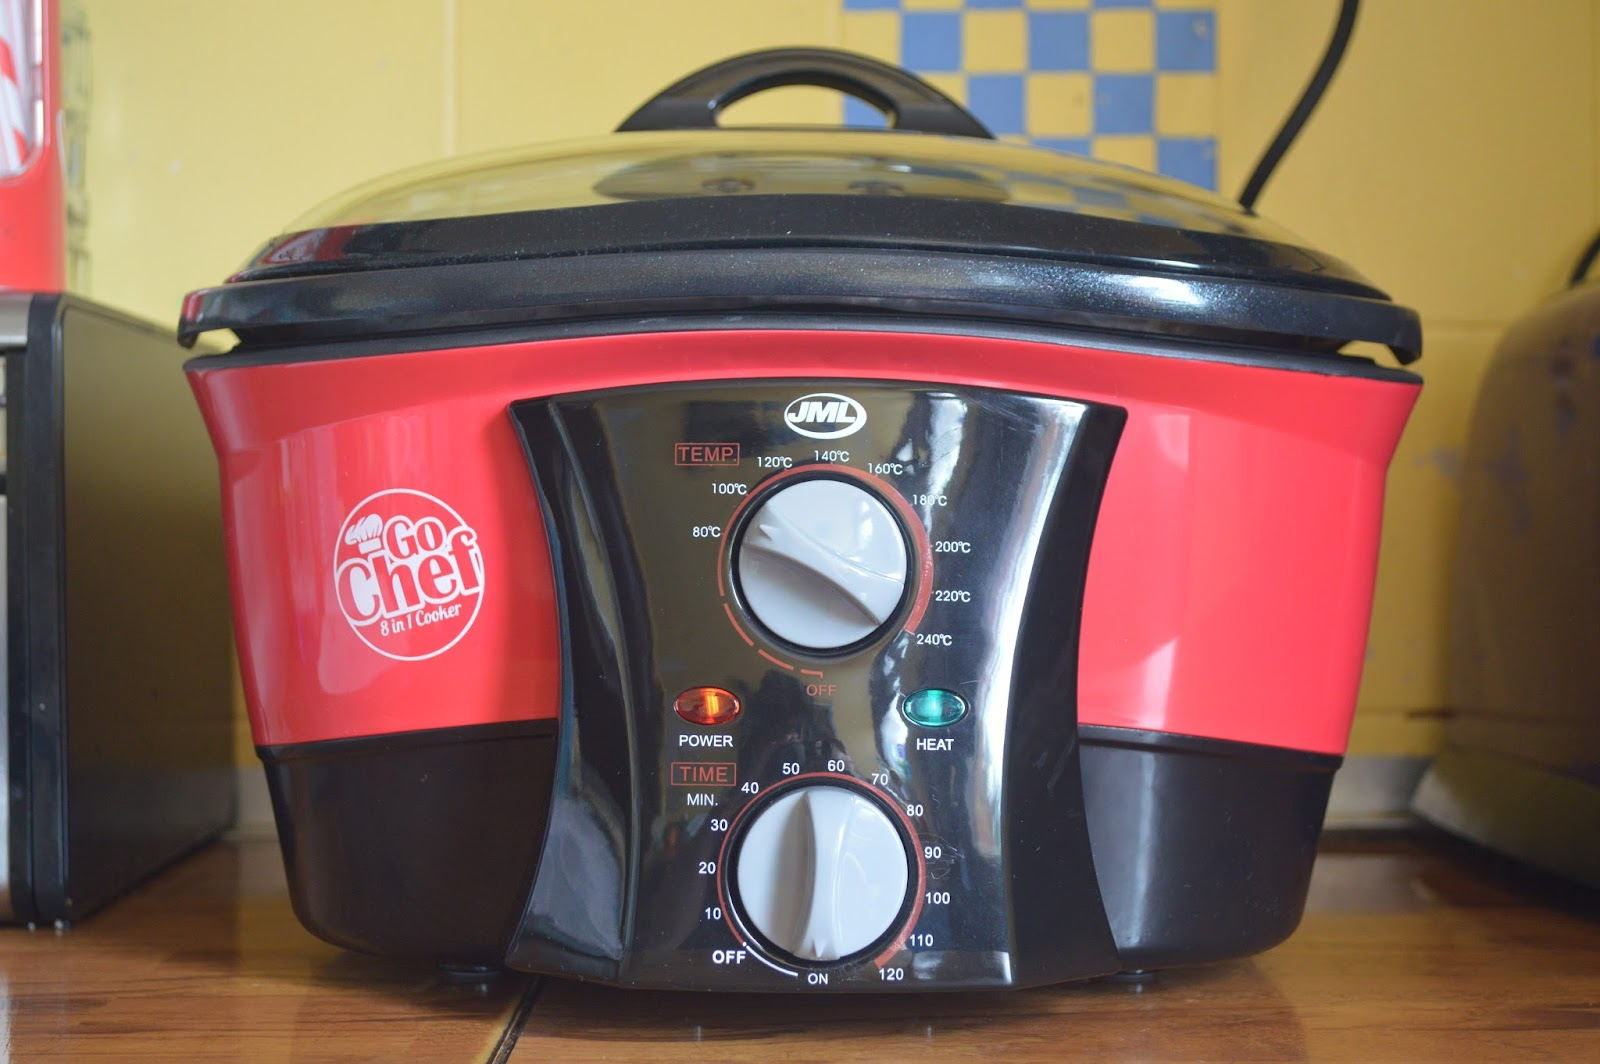 , Quorn and Mushroom Stew in the JML Go Chef 8 in 1 Cooker